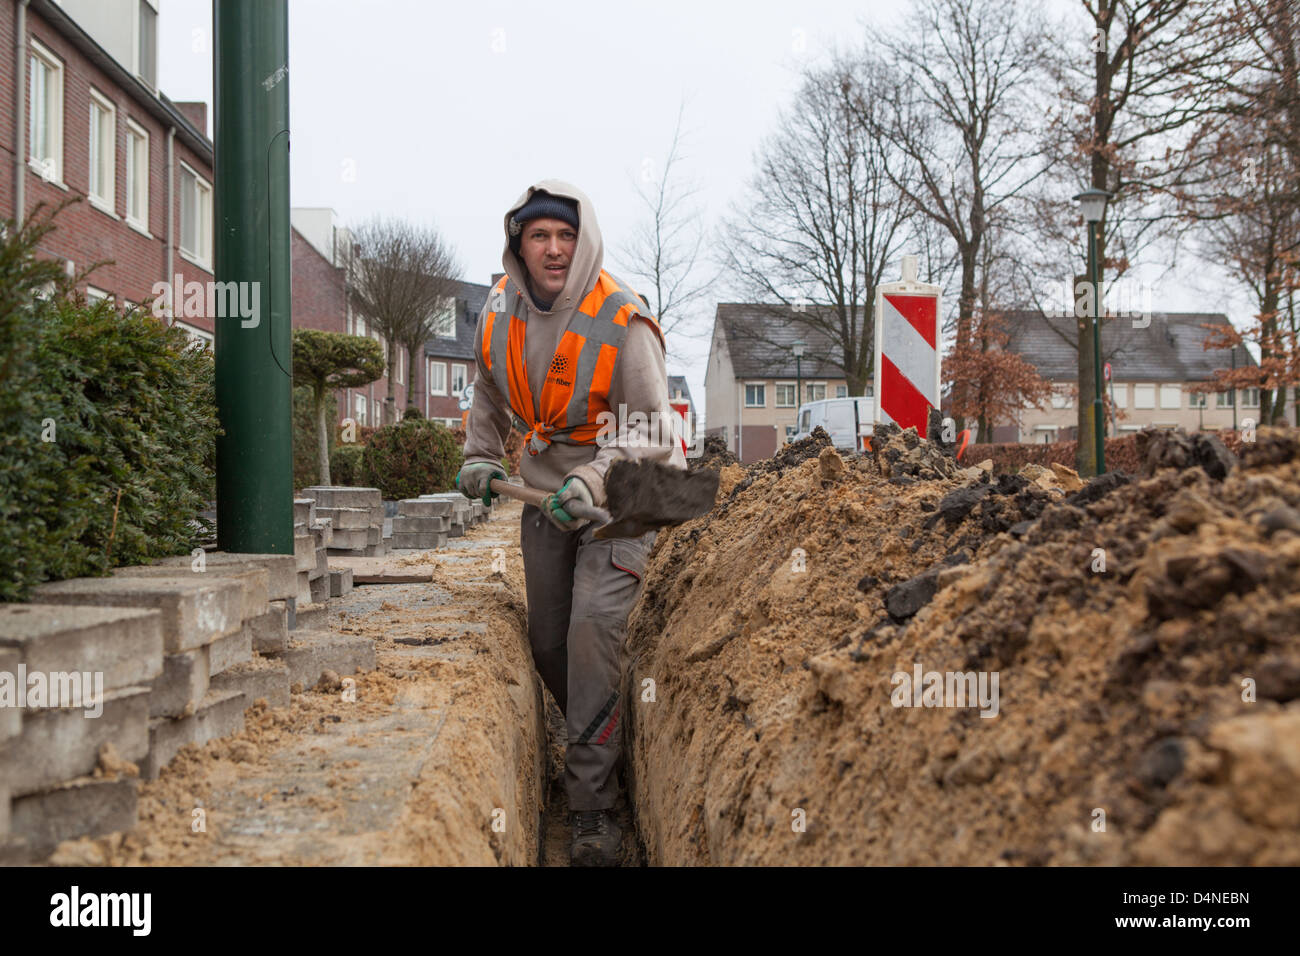 Hungarian migrant worker digging for the construction of a glass fiber network in the Netherlands - Stock Image